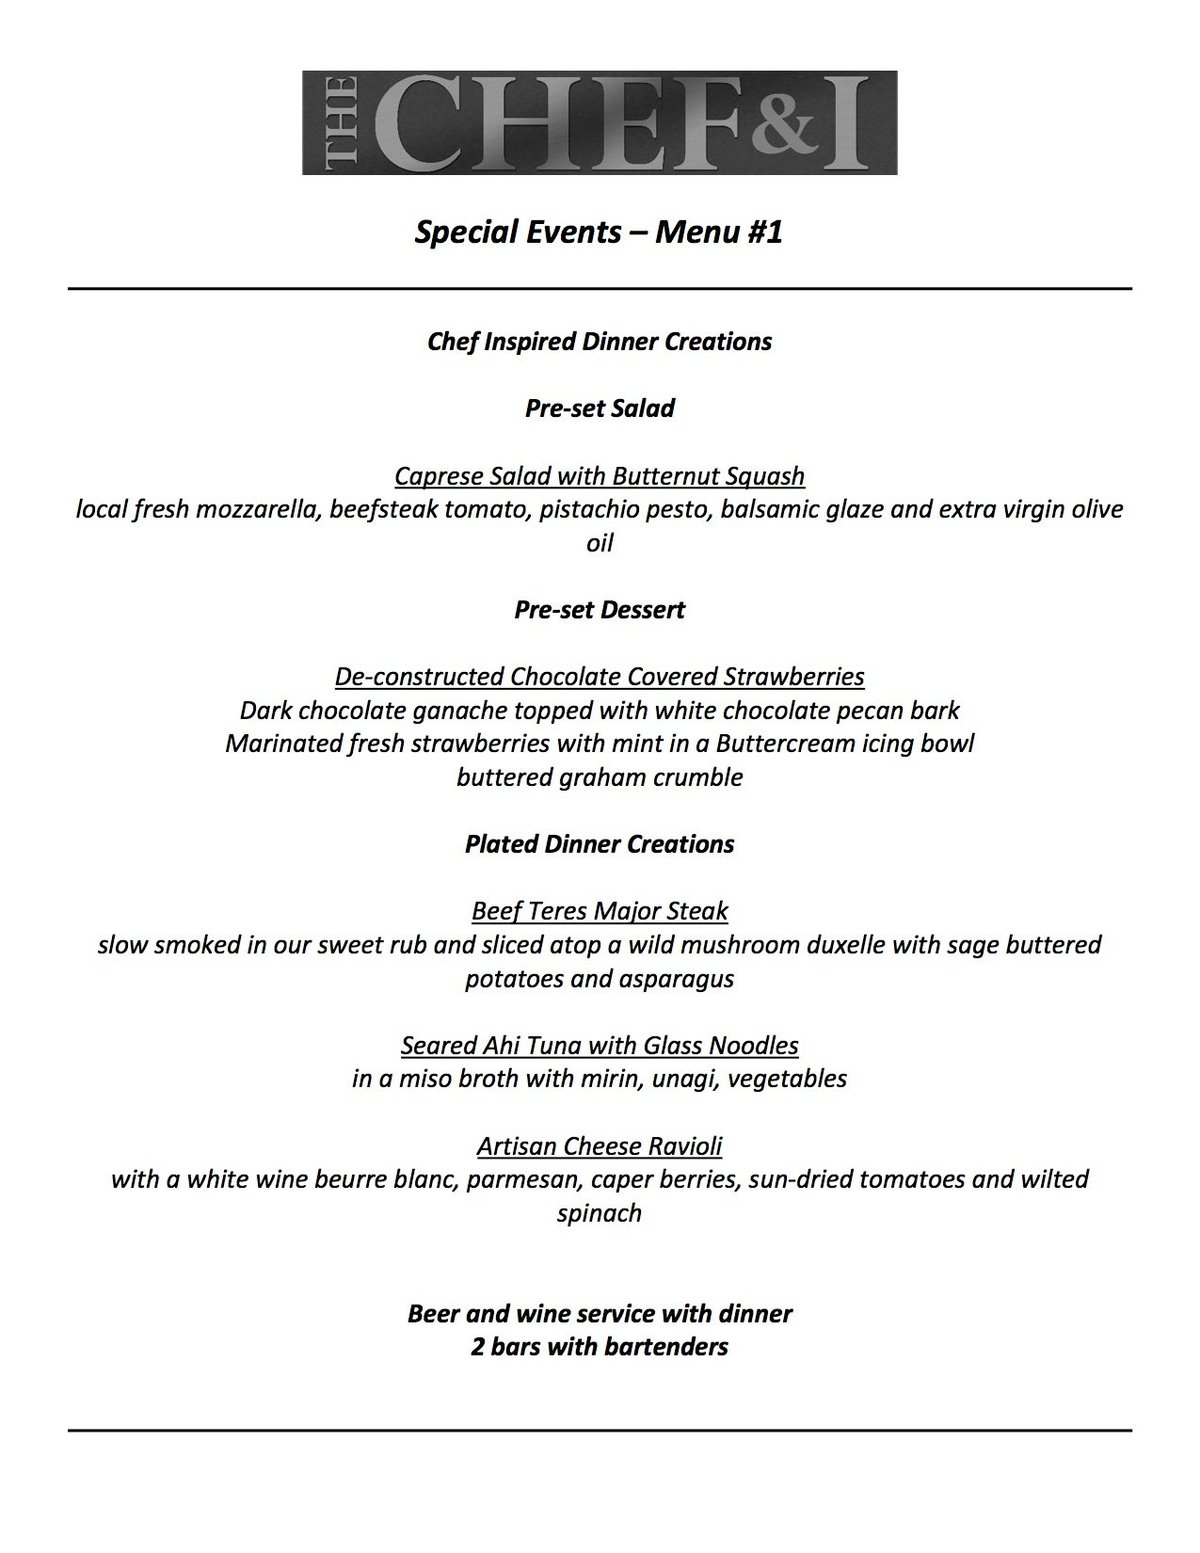 Special Events Menu 1